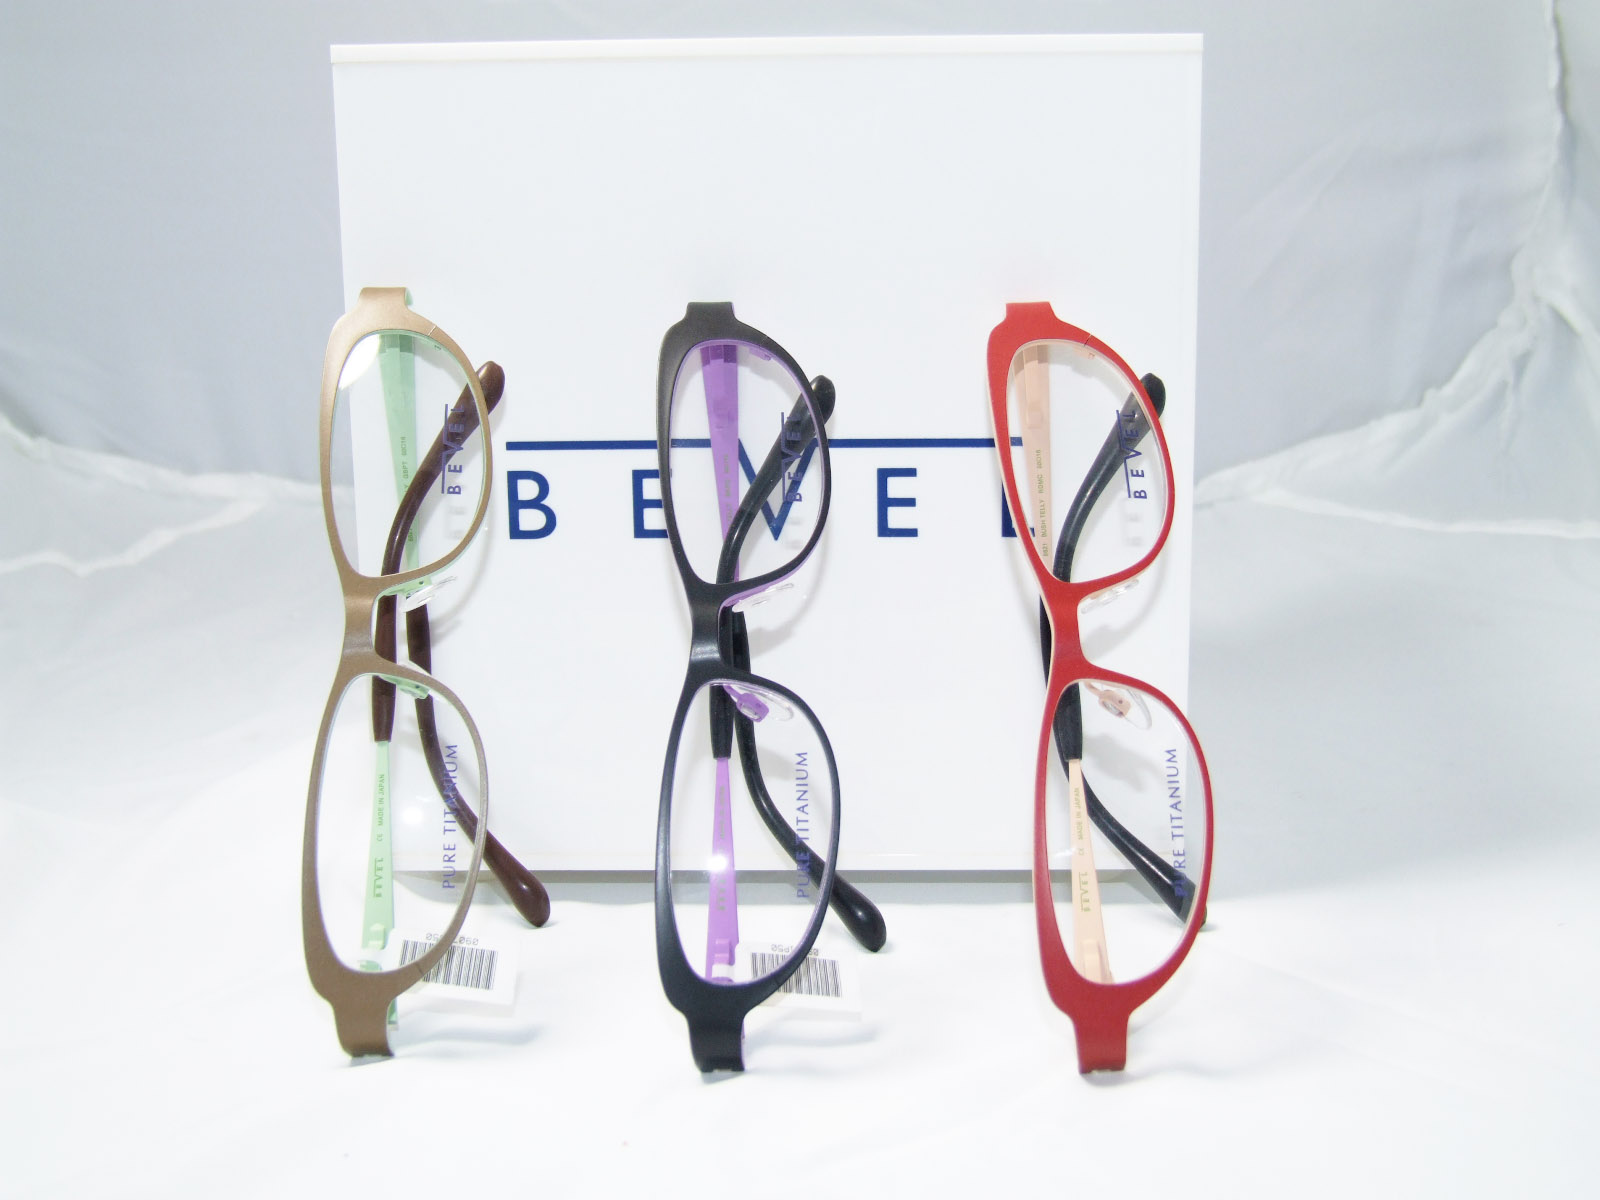 Erkers Fine Eyewear: Bevel Specs Uniquely Colorful Eyewear